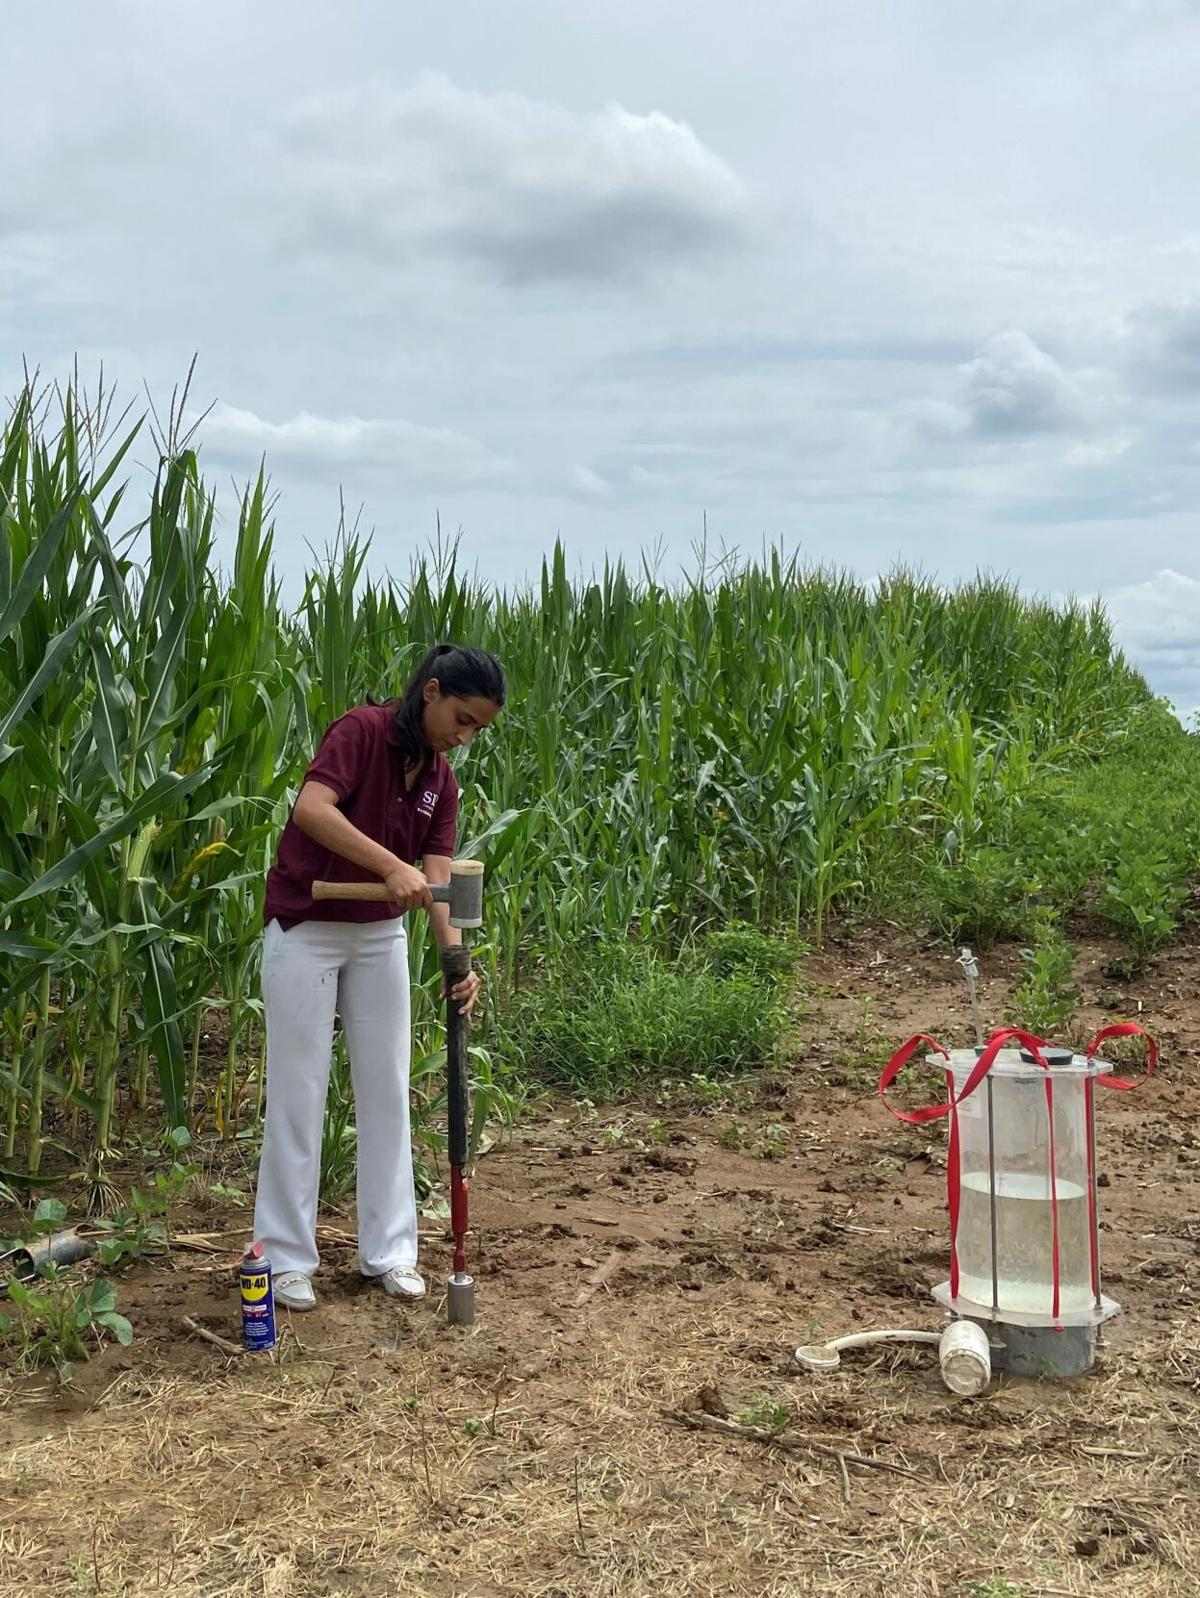 Researchers hope to quantify gypsum's benefits for soil, water